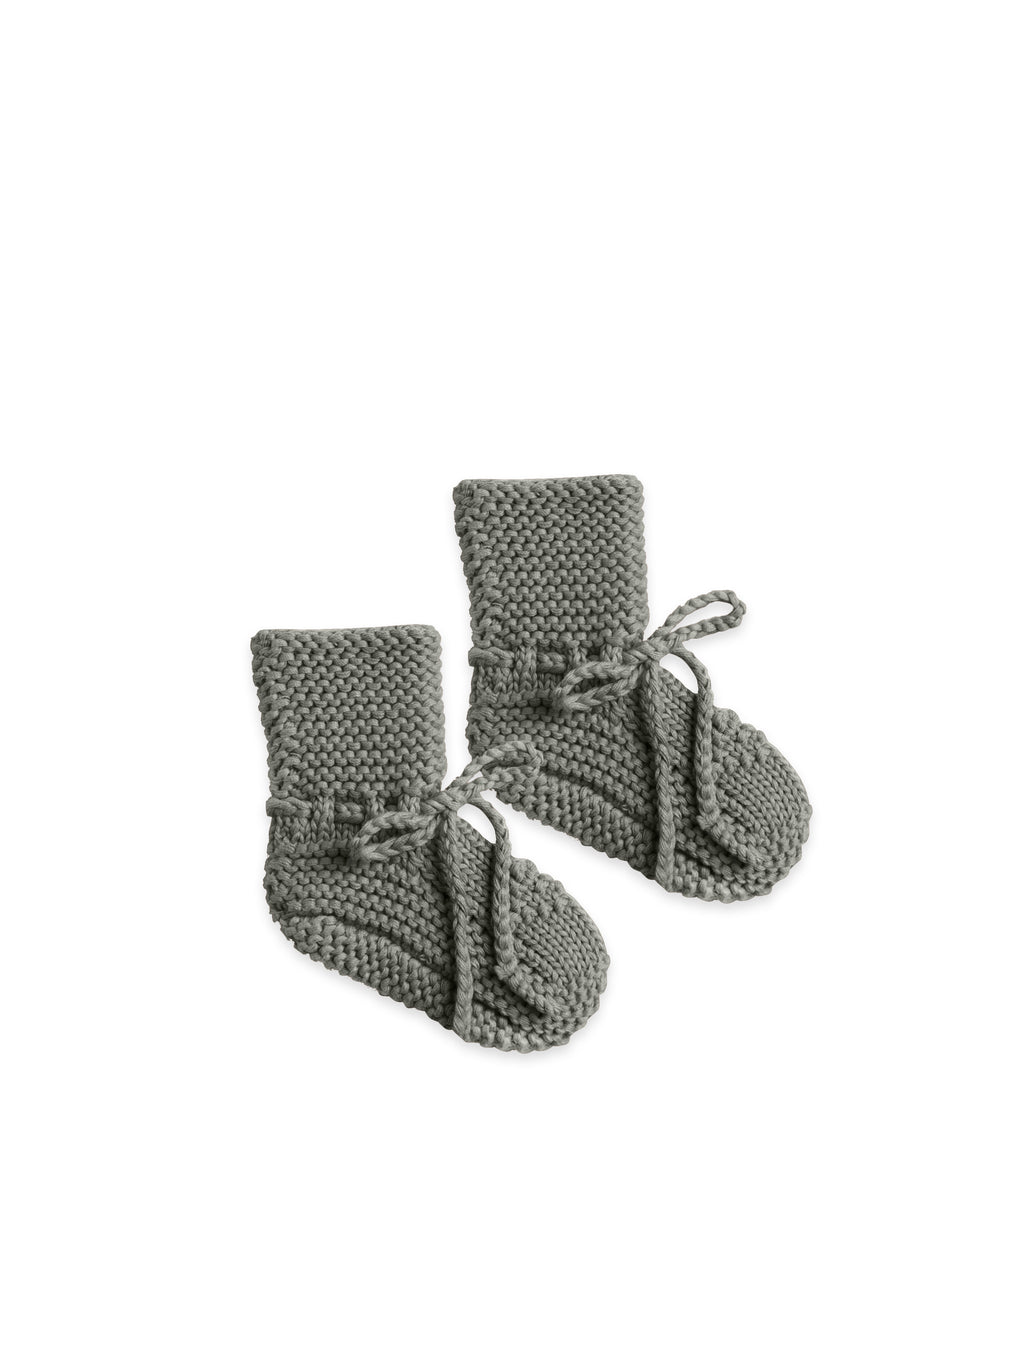 Quincy Mae Knit Baby Booties - Eucalyptus